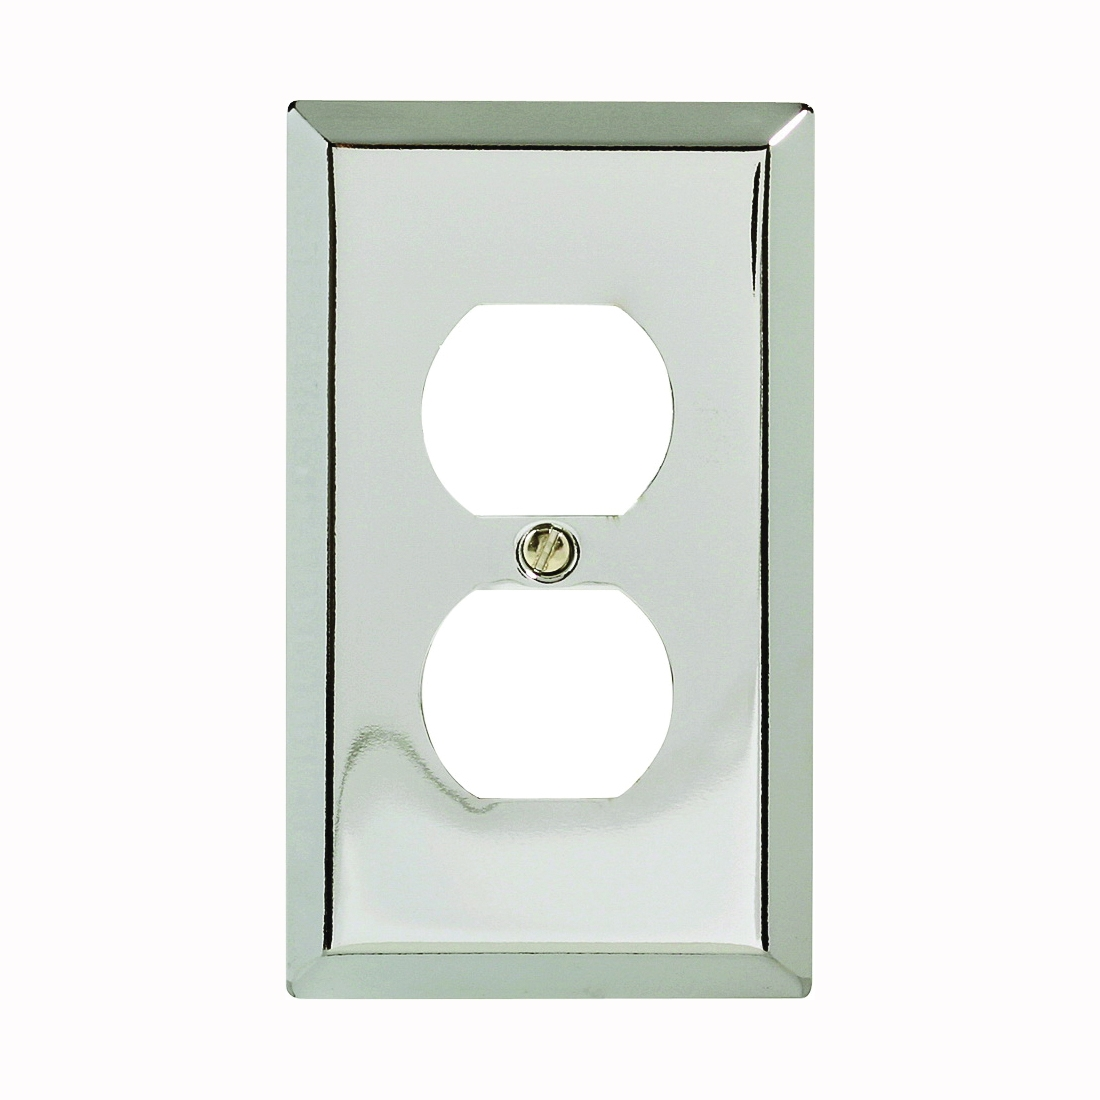 Picture of Amerelle 161D Duplex Receptacle Wallplate, 4-5/16 in L, 2-7/8 in W, 1-Gang, Steel, Polished Chrome